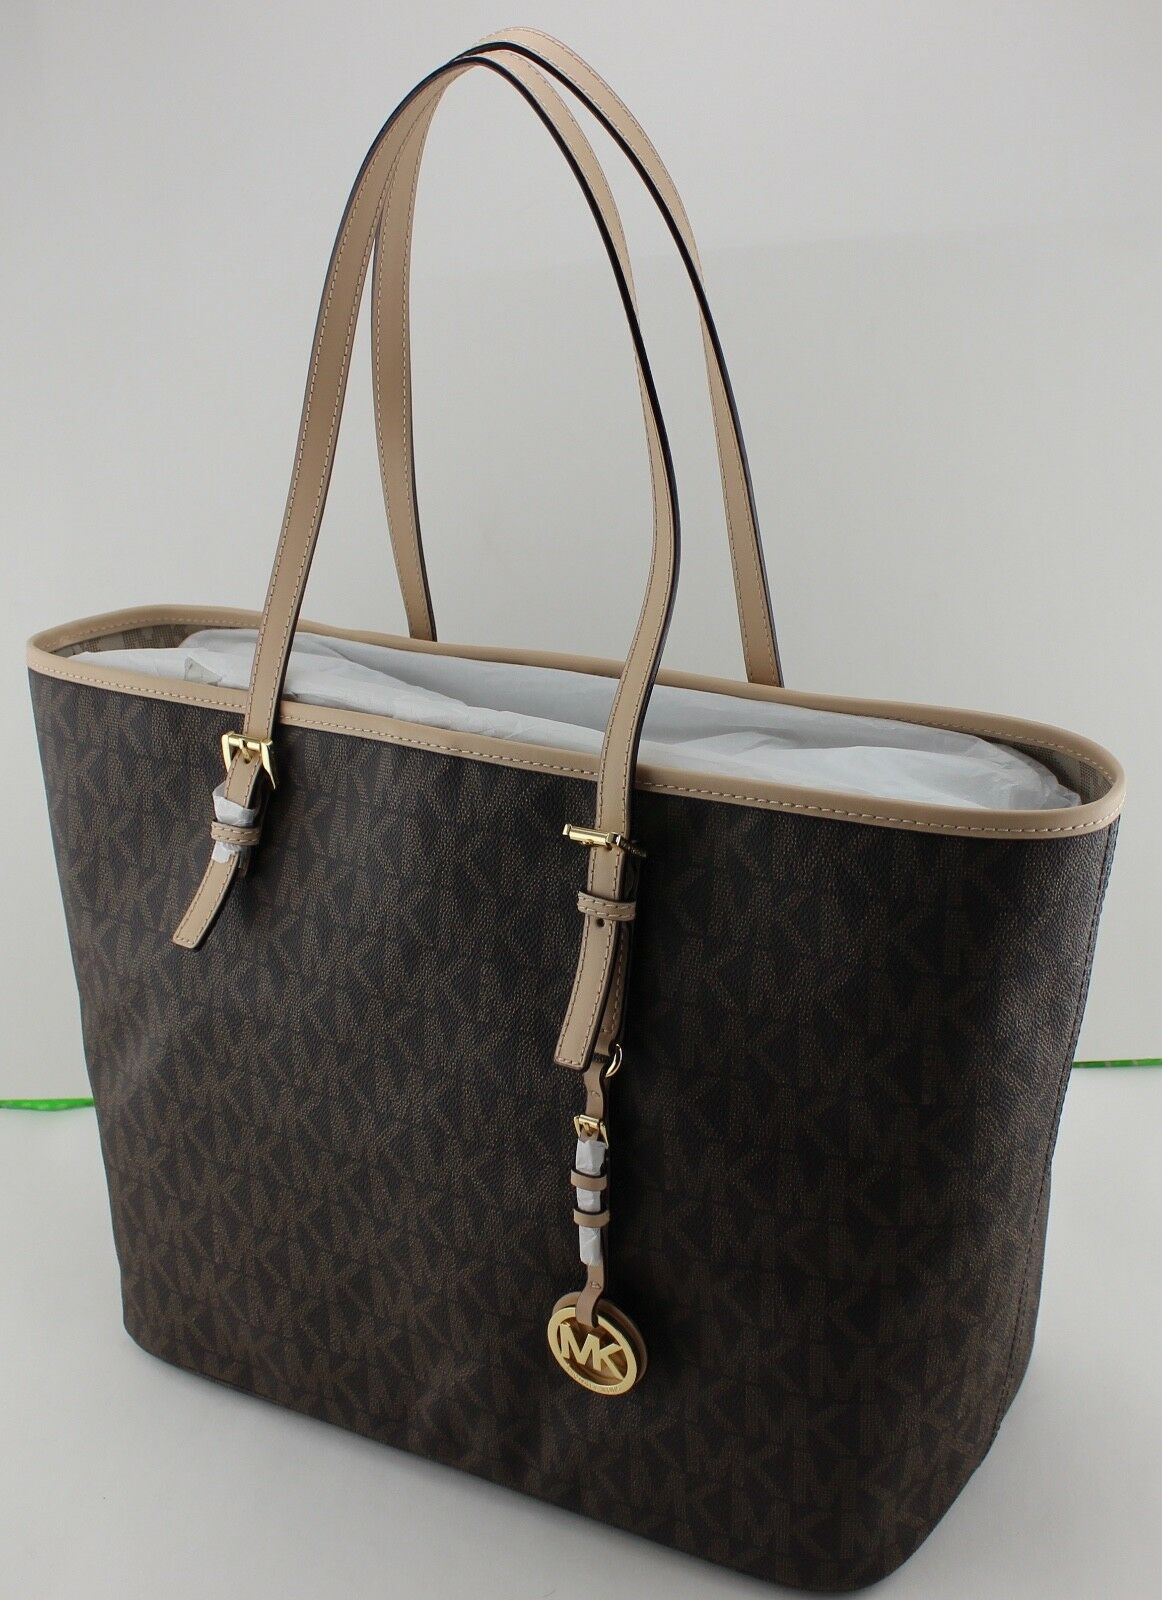 New Authentic Michael Kors Brown Jet Set Travel Ebaycom Jetset Lugagge Md Tote Signature Womens Handbag